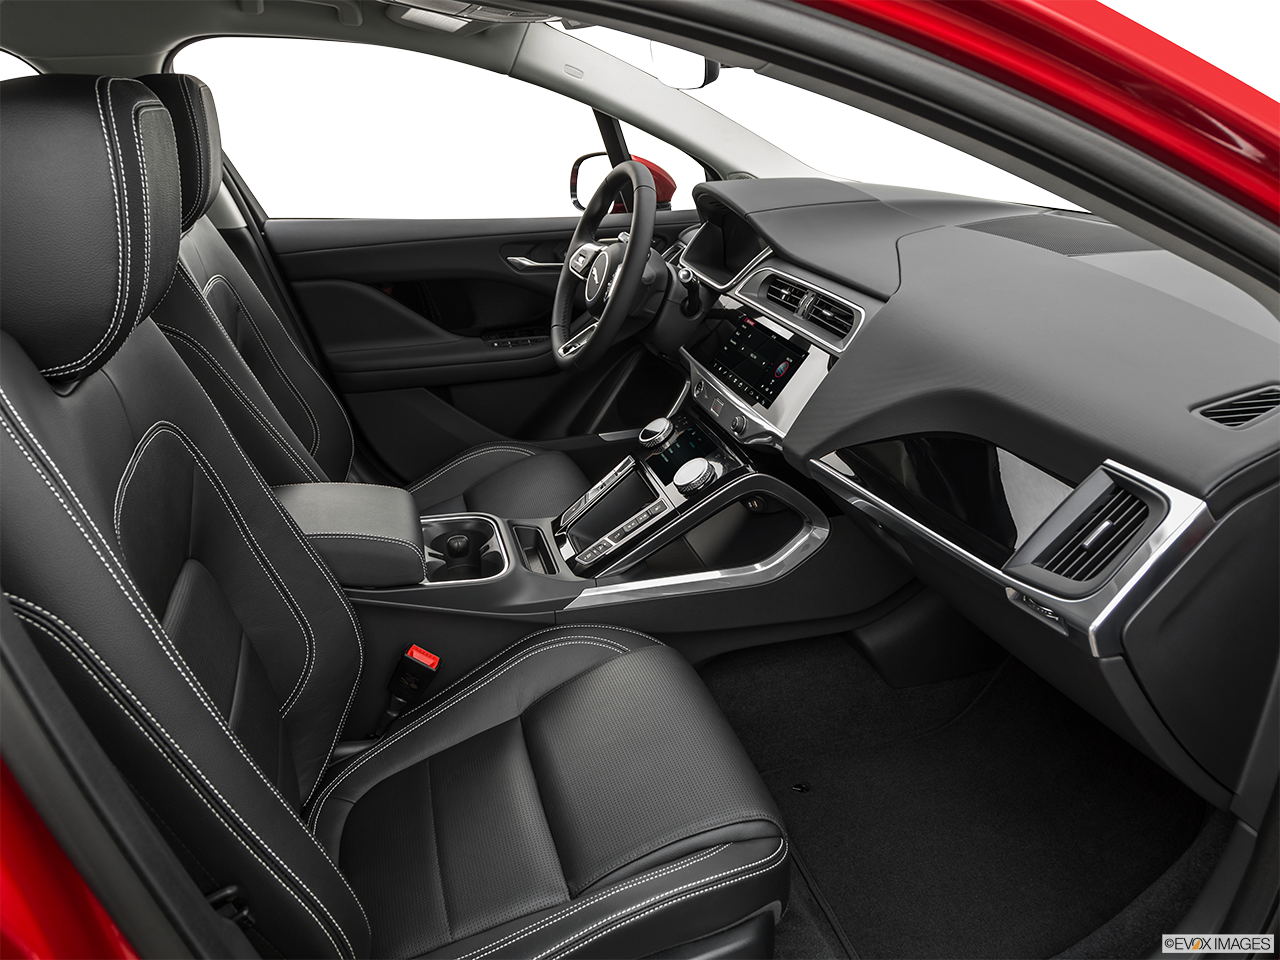 Interior view of the Jaguar I-Pace